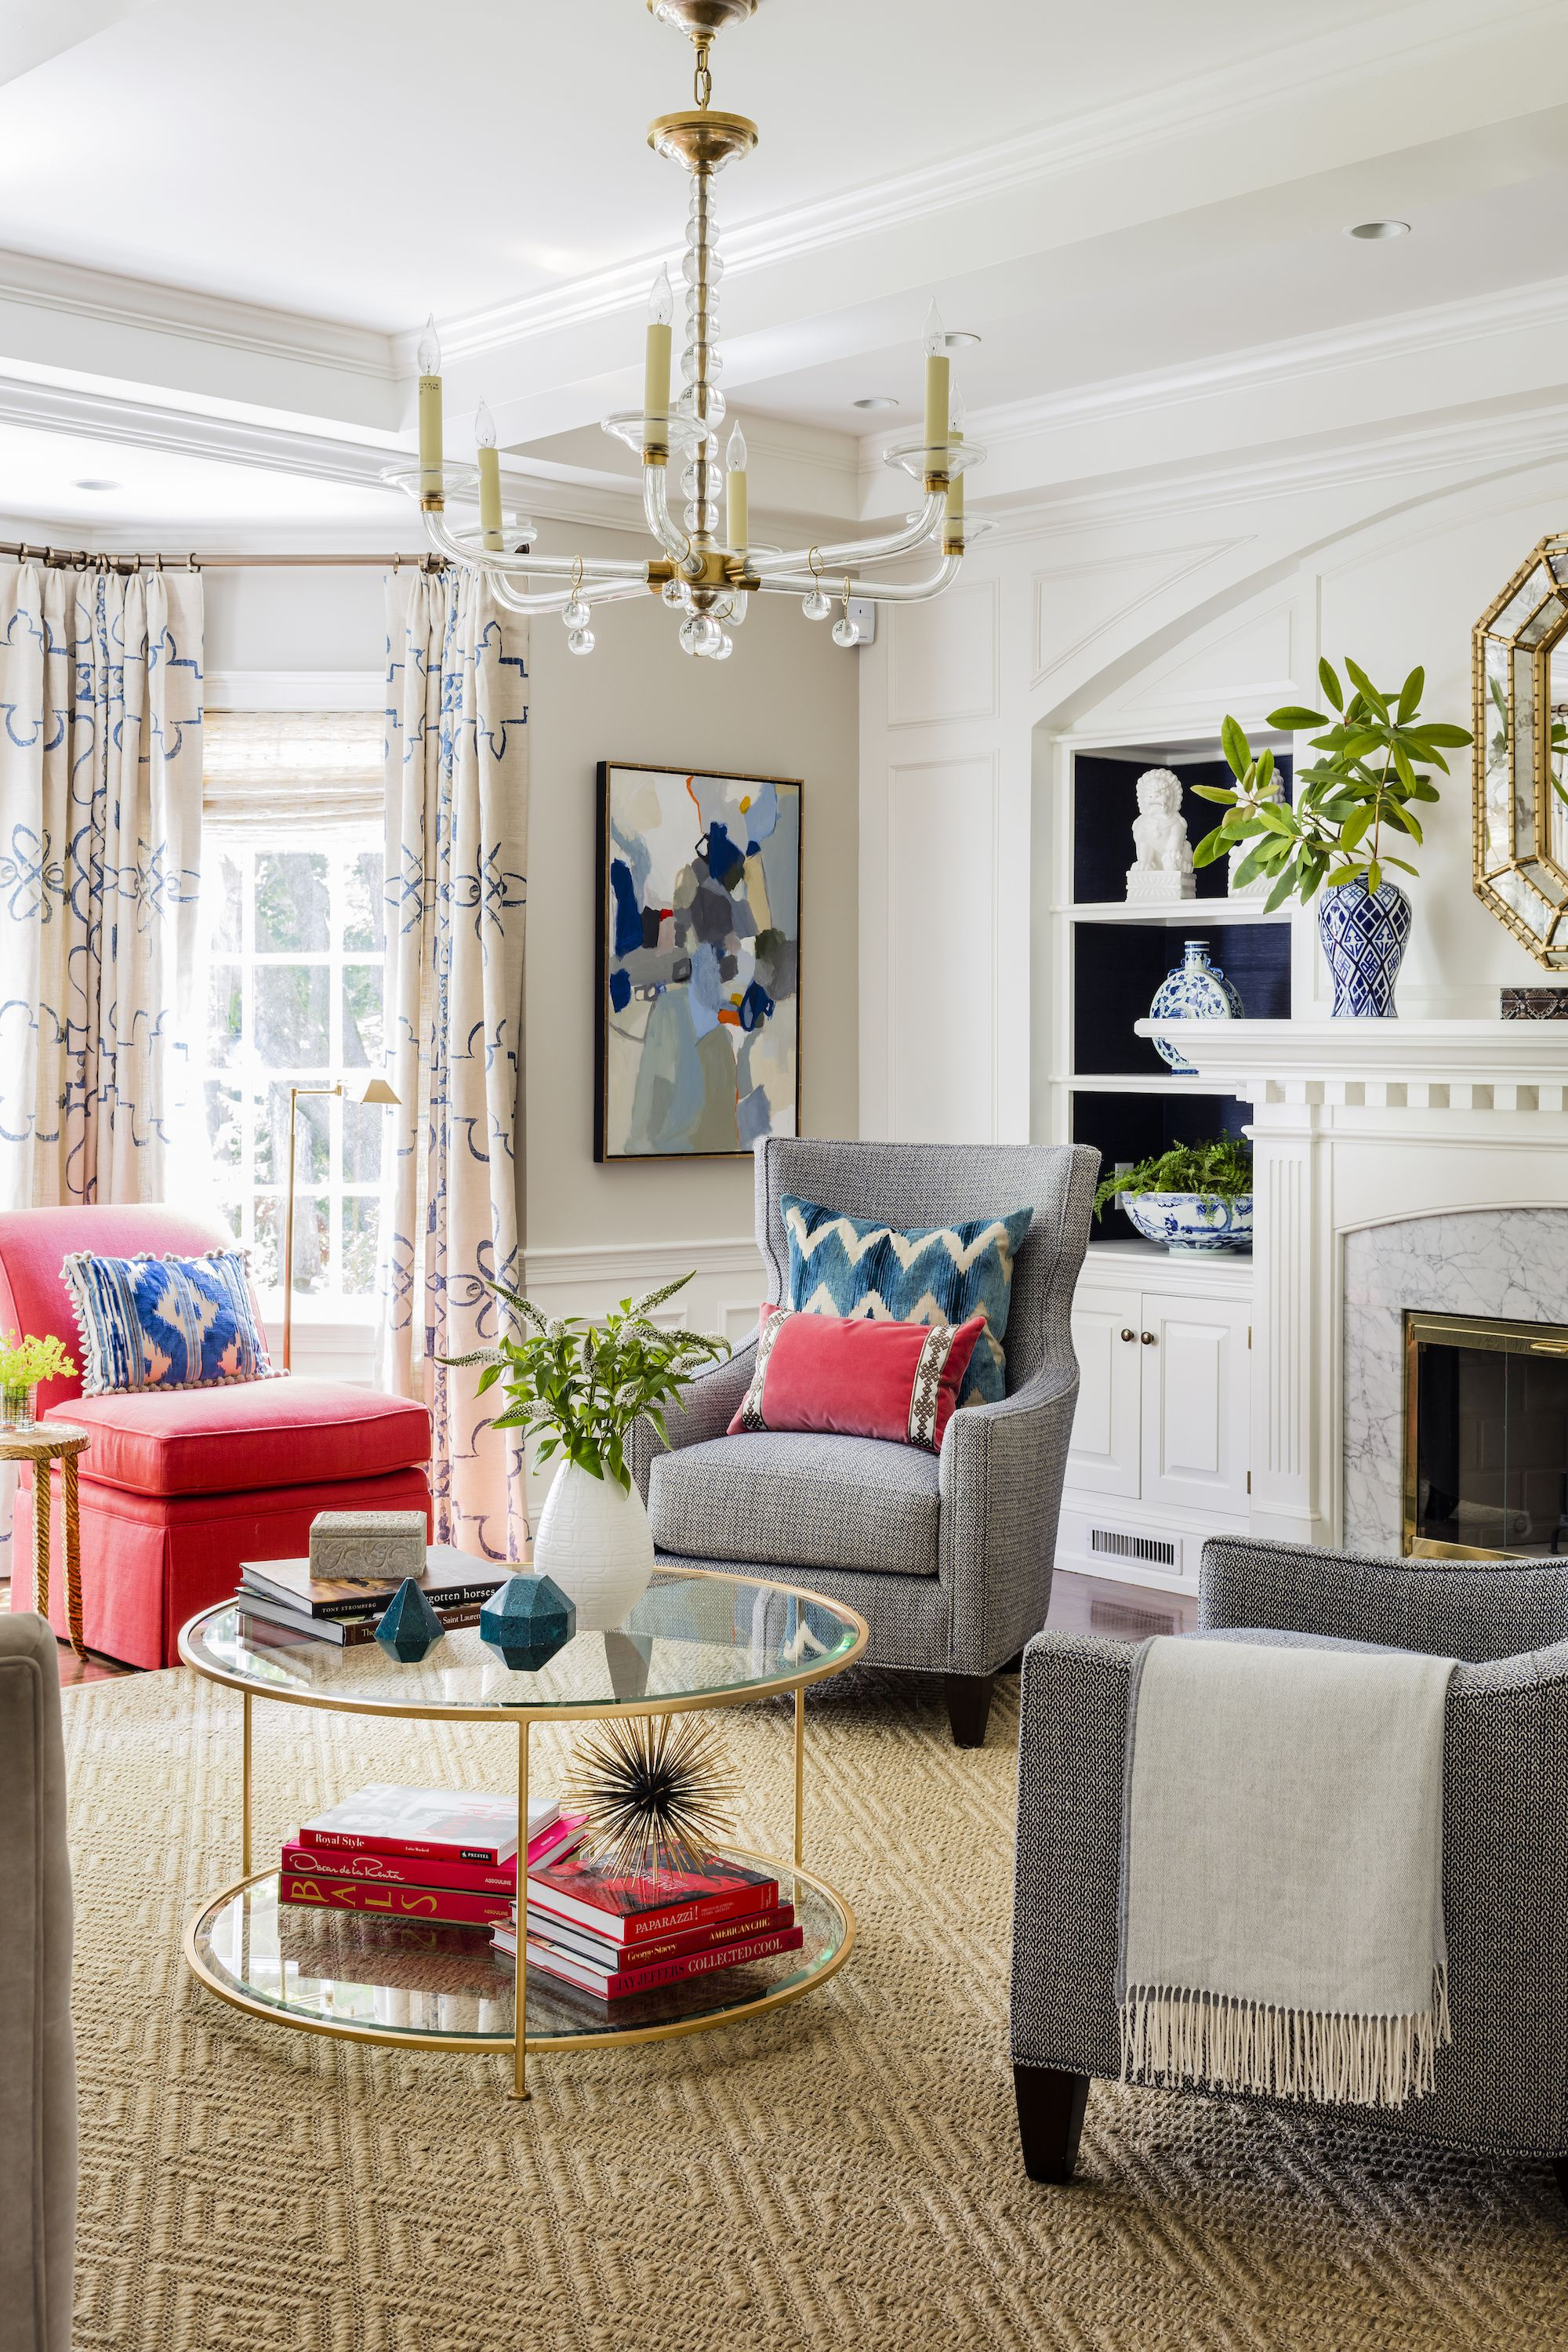 51 Best Living Room Ideas Stylish Living Room Decorating Designs regarding Setting Up Living Room